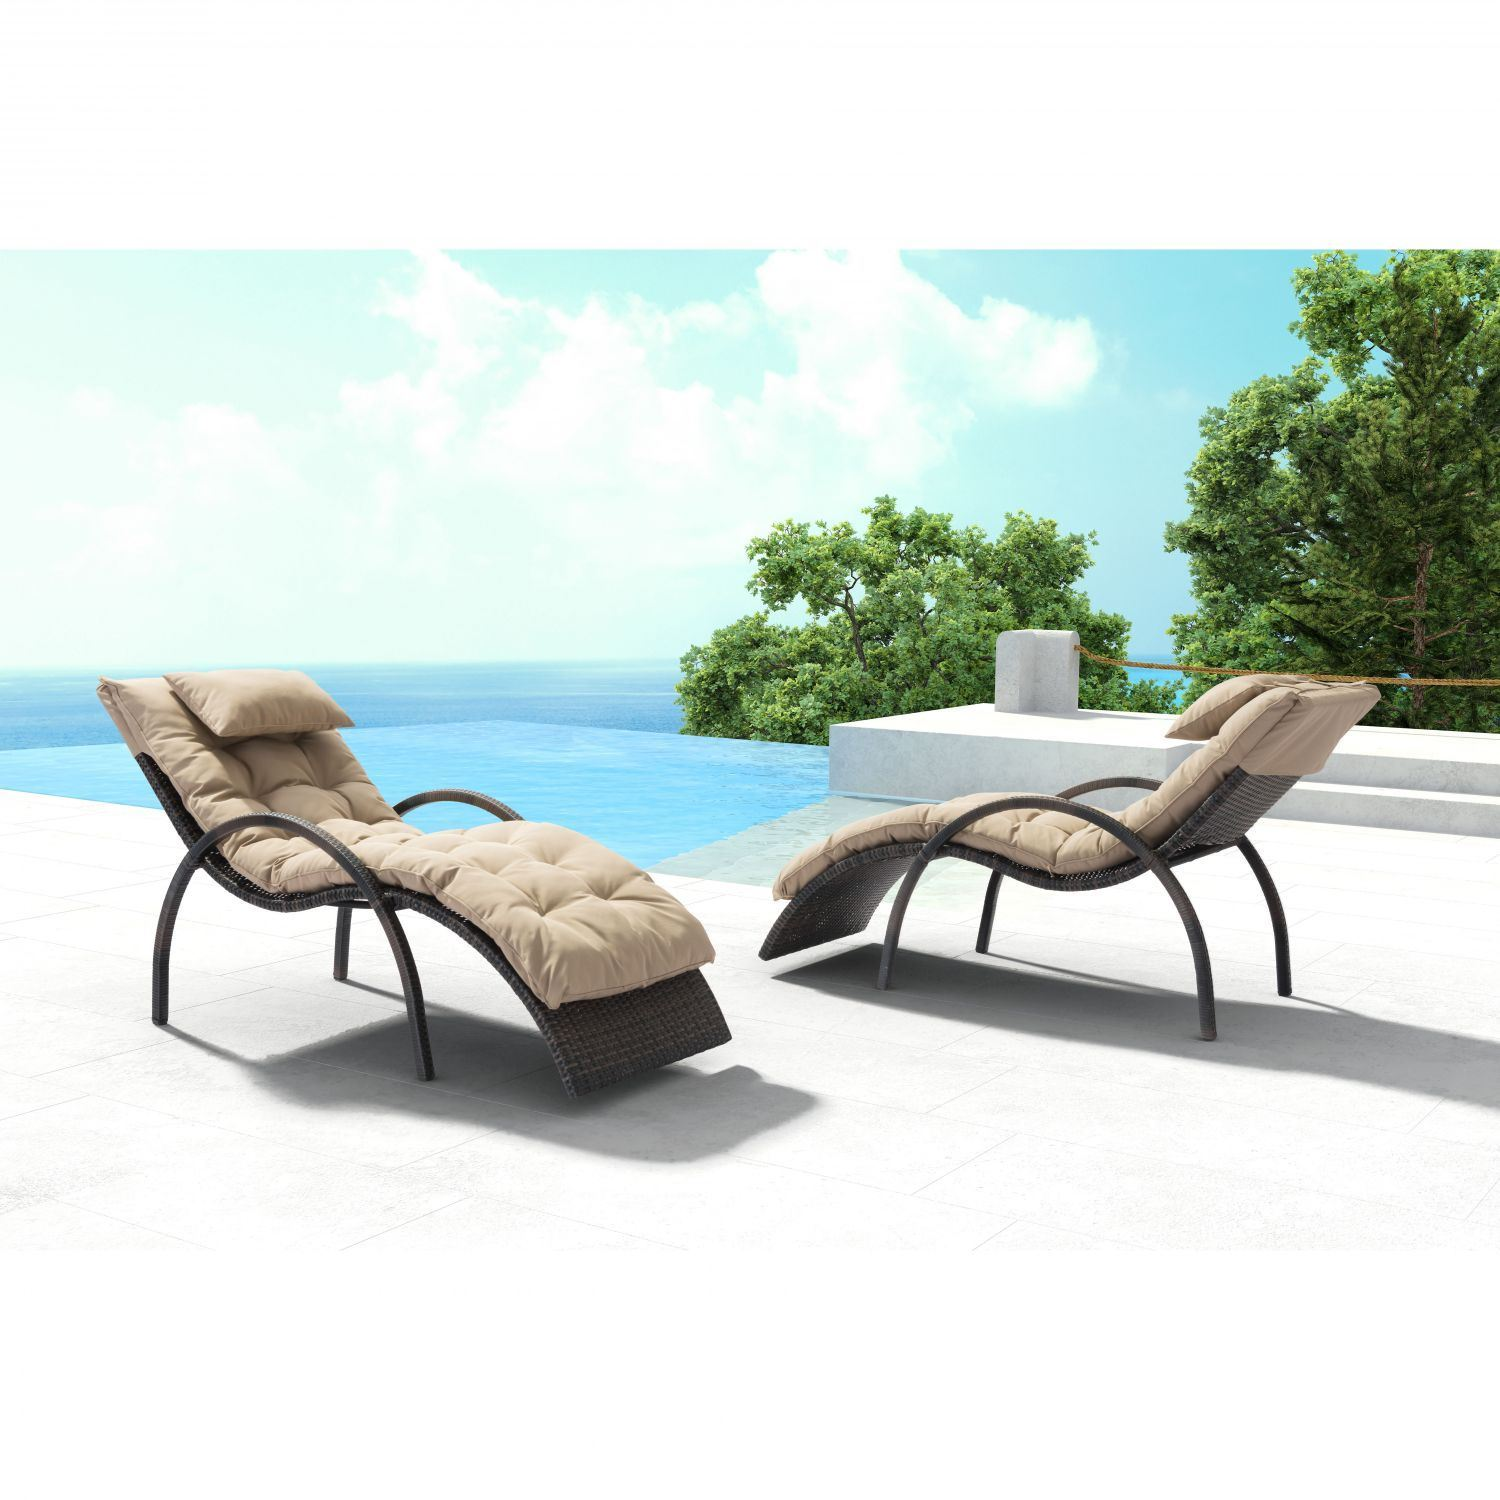 Eggertz beach chaise lounge brown beige 703841 zuo for Chaise lounge beach